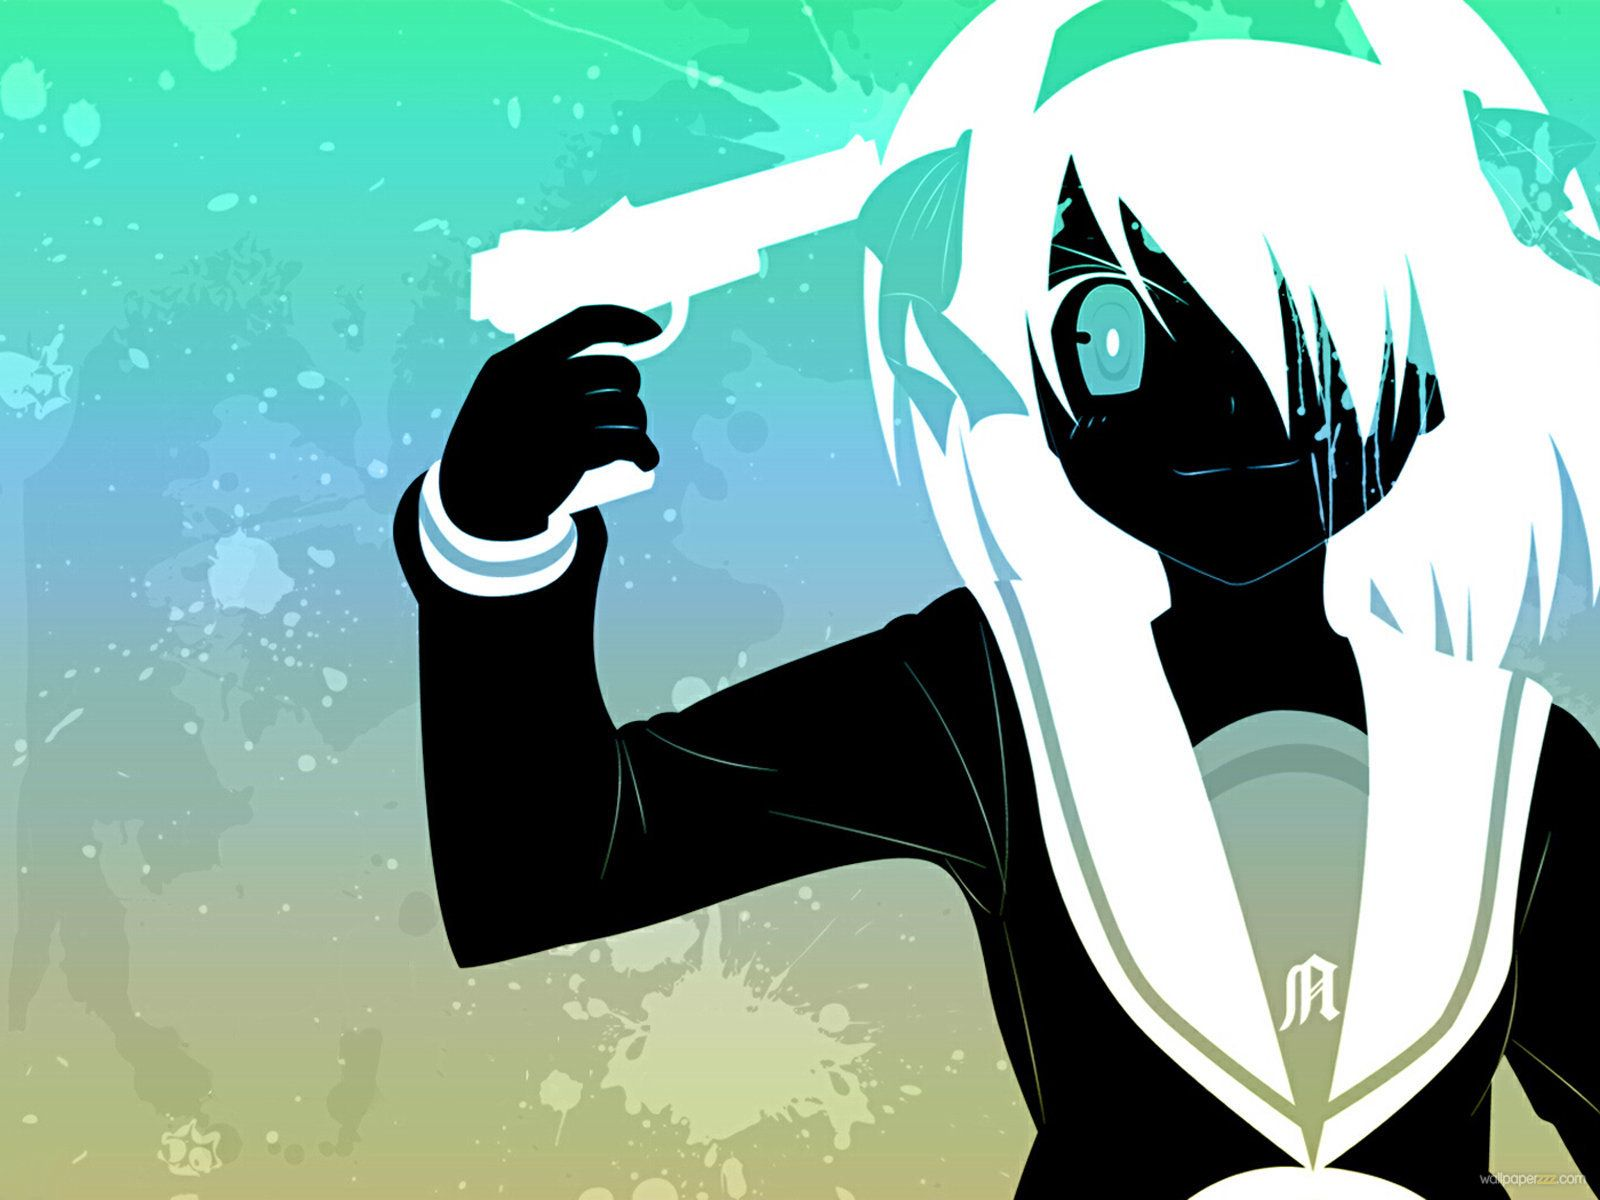 Anime Girl Suicide Suicide Girl Emo Anime Wallpaper for